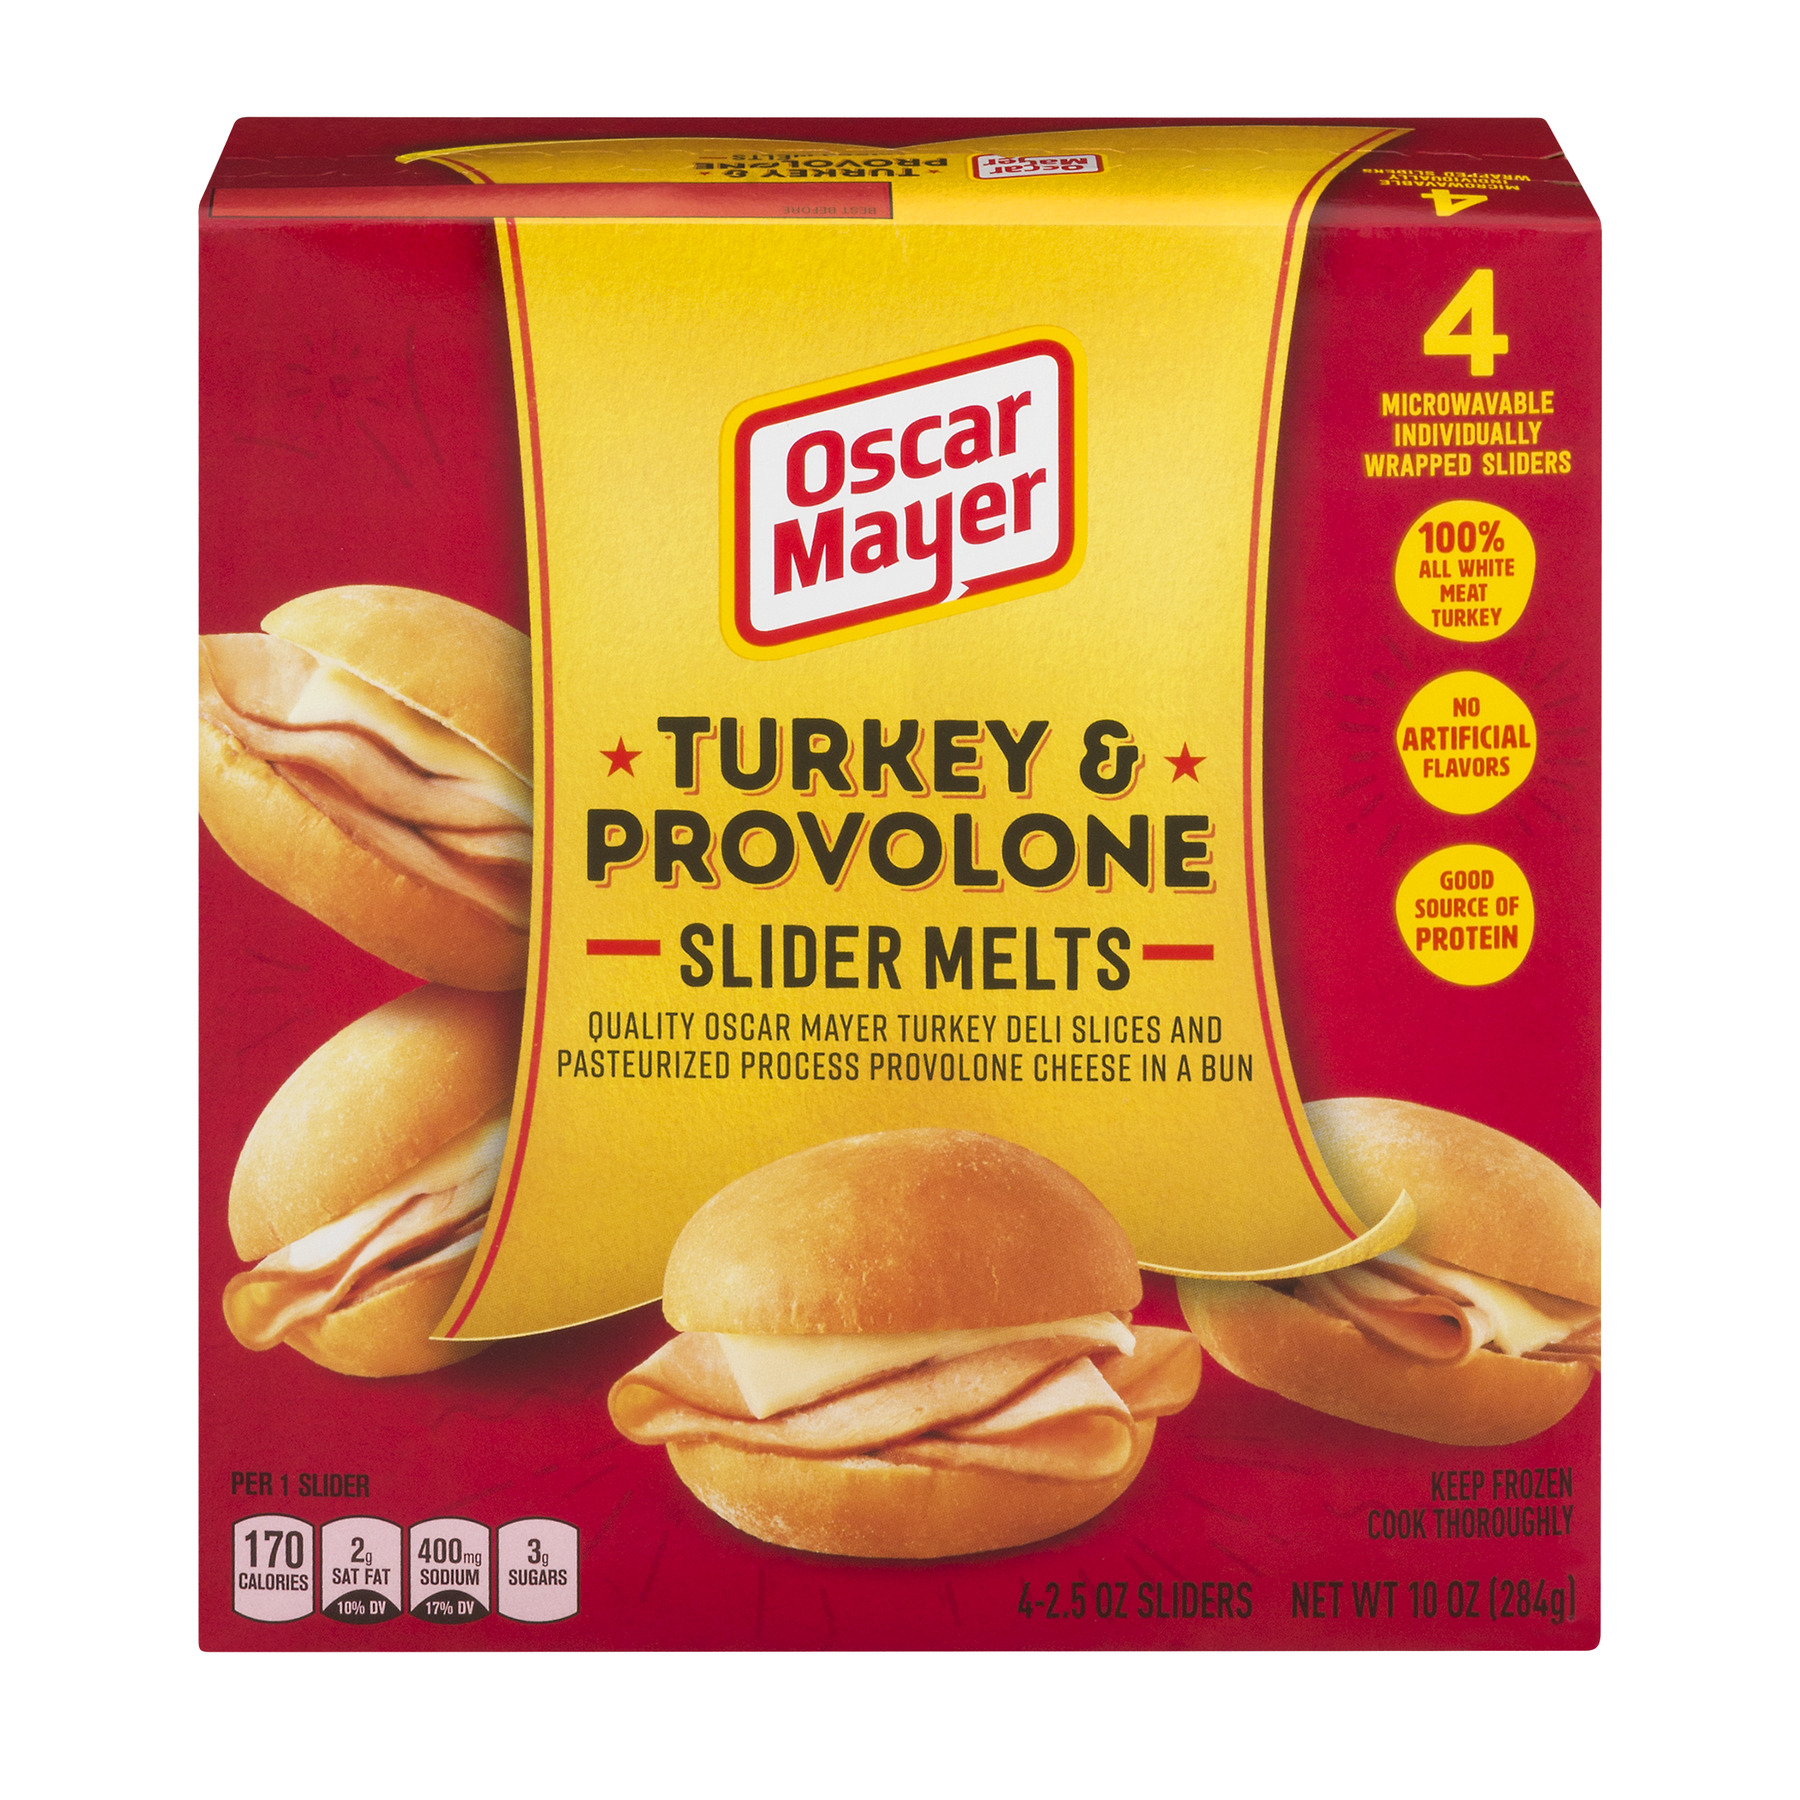 Oscar Mayer Turkey & Provolone Slider Melts, 2.5 oz Sliders, 4 Count